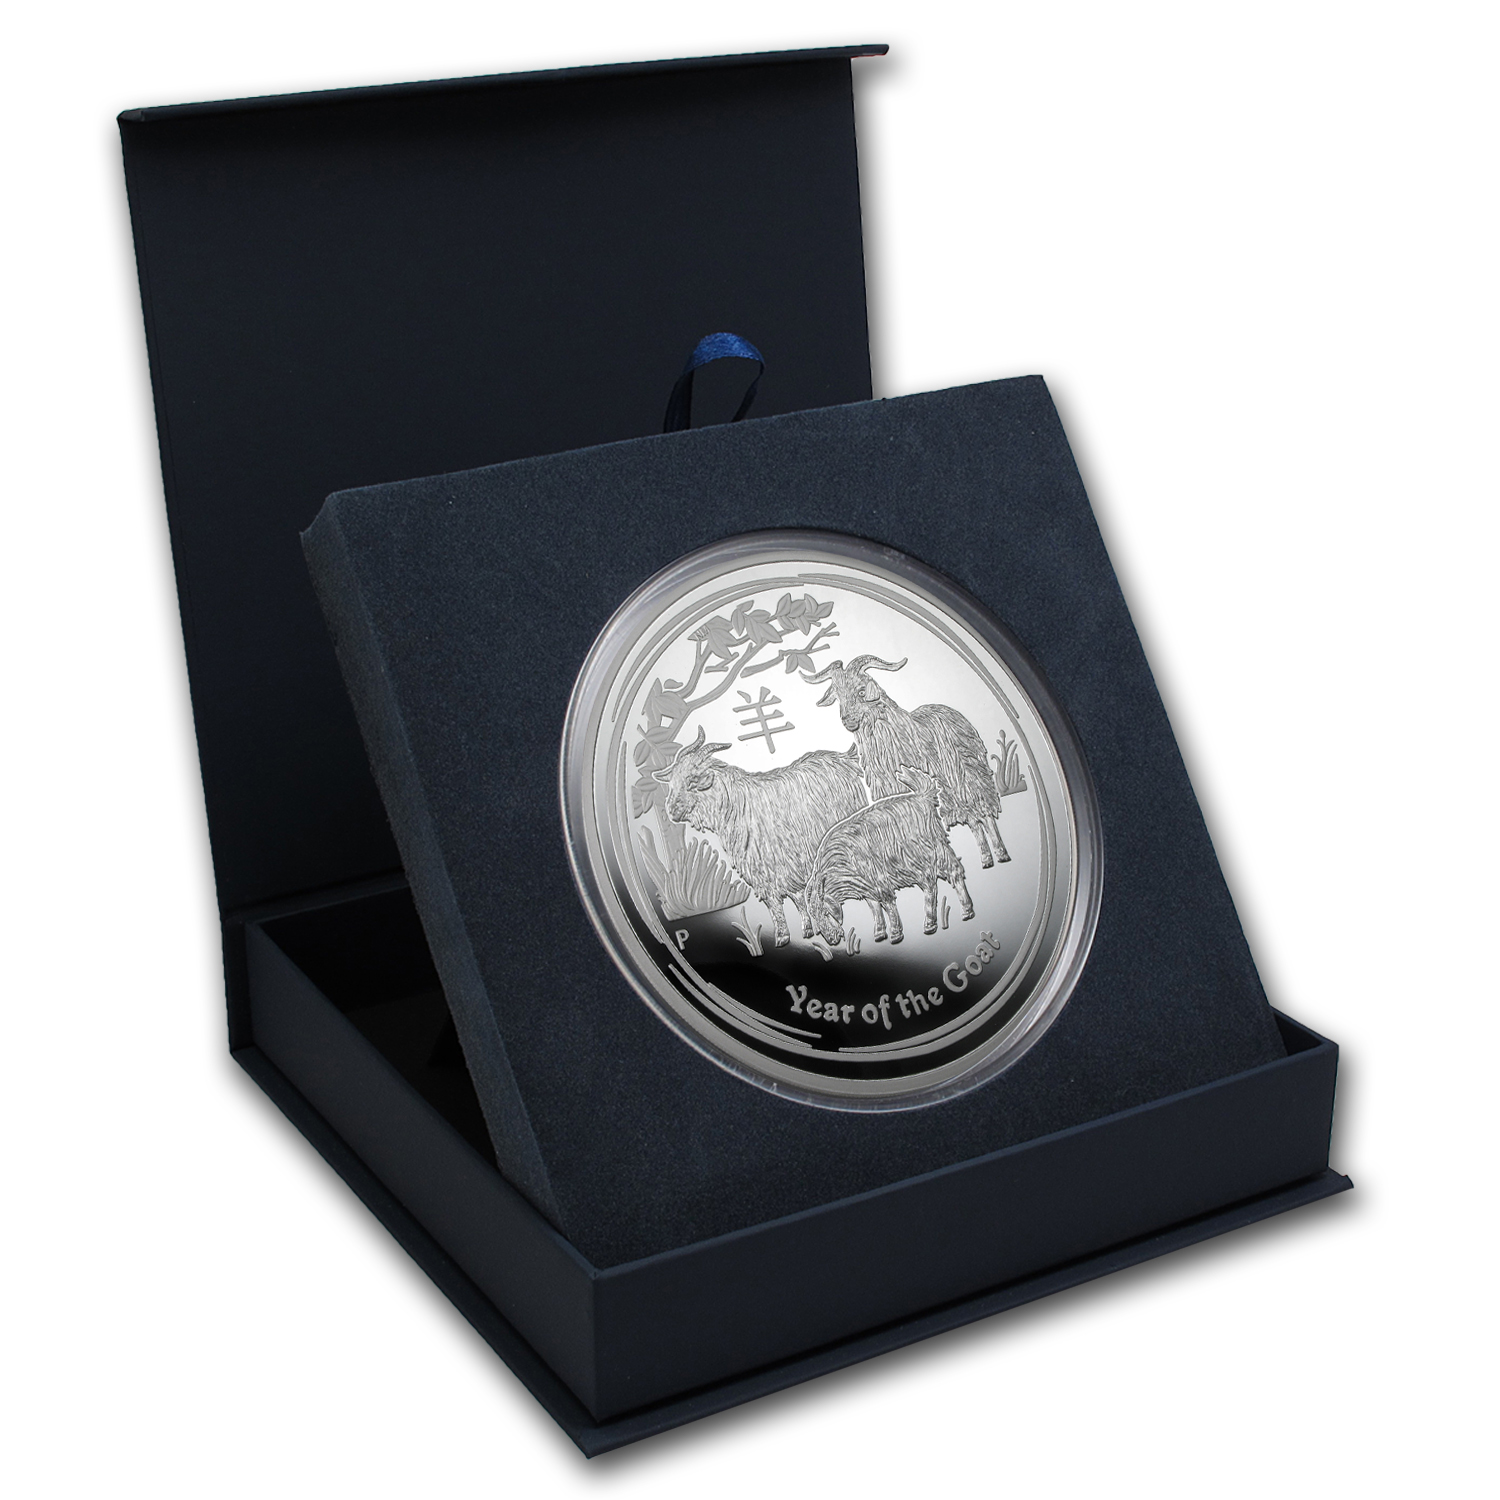 APMEX Gift Box - 1 kilo Perth Mint Silver Coin